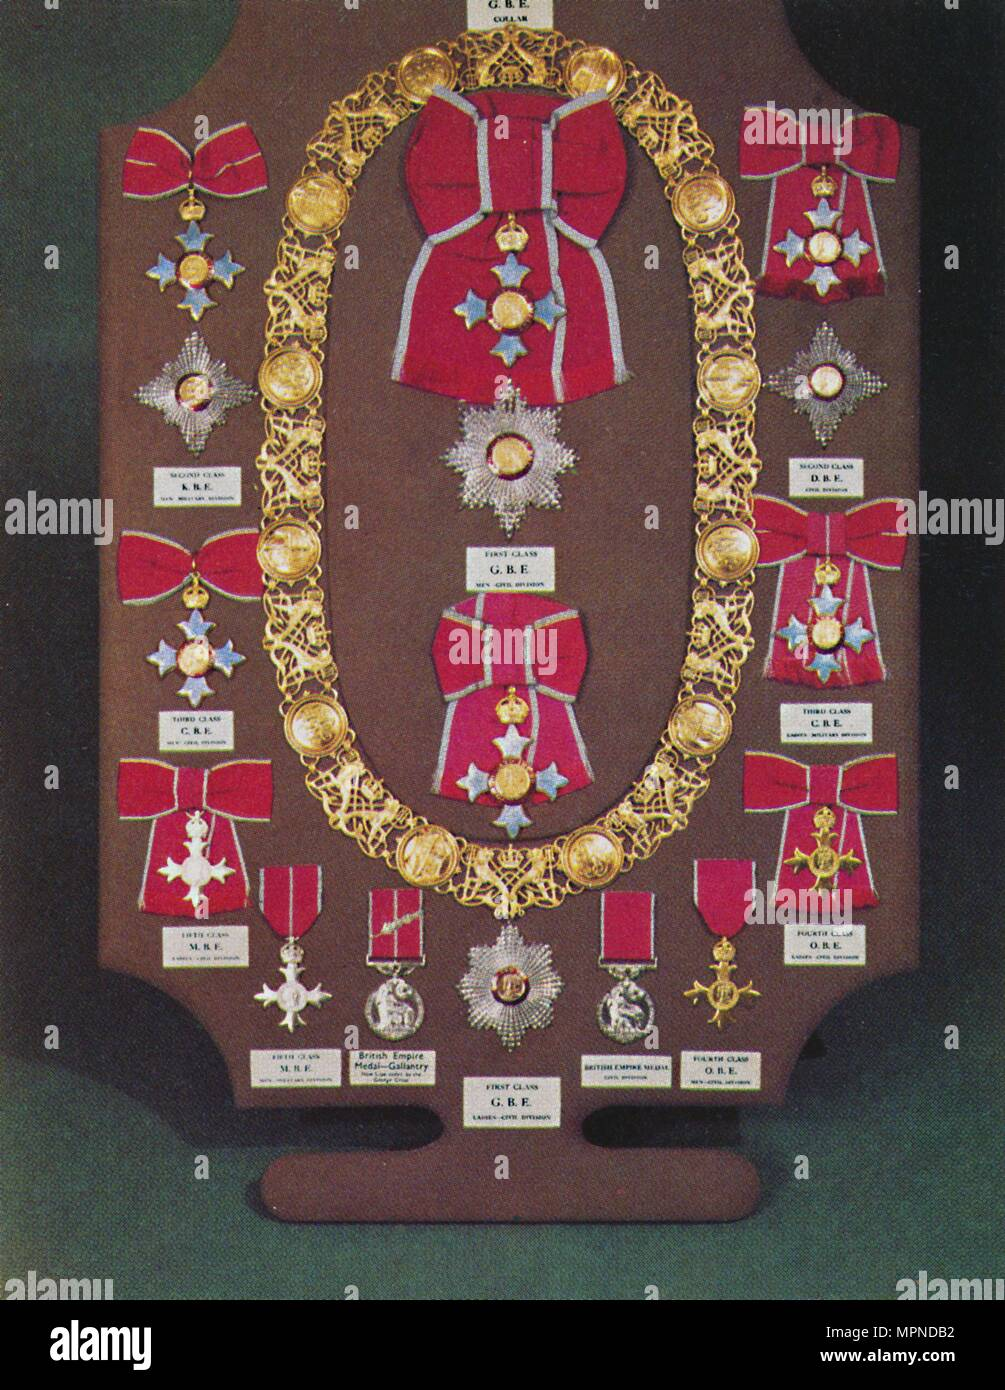 'Insignia of the Order of the British Empire', 1953. Artist: Unknown. - Stock Image